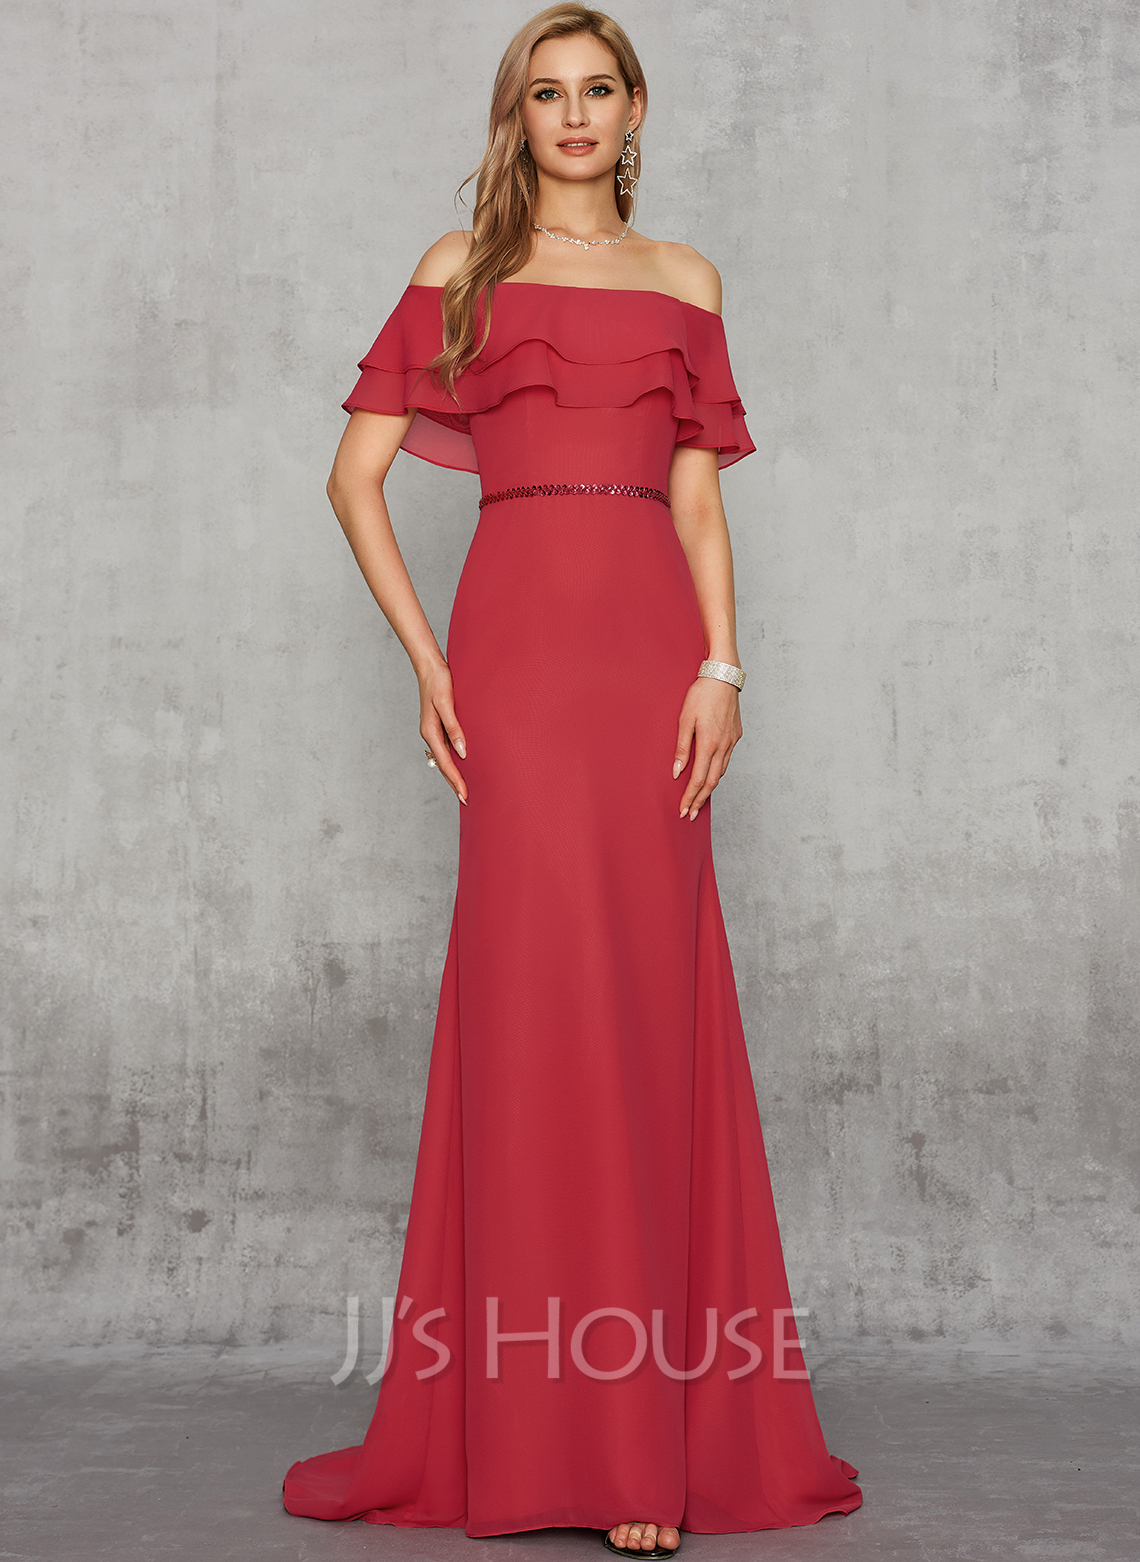 Trumpet/Mermaid Off-the-Shoulder Sweep Train Chiffon Prom Dresses With Sequins